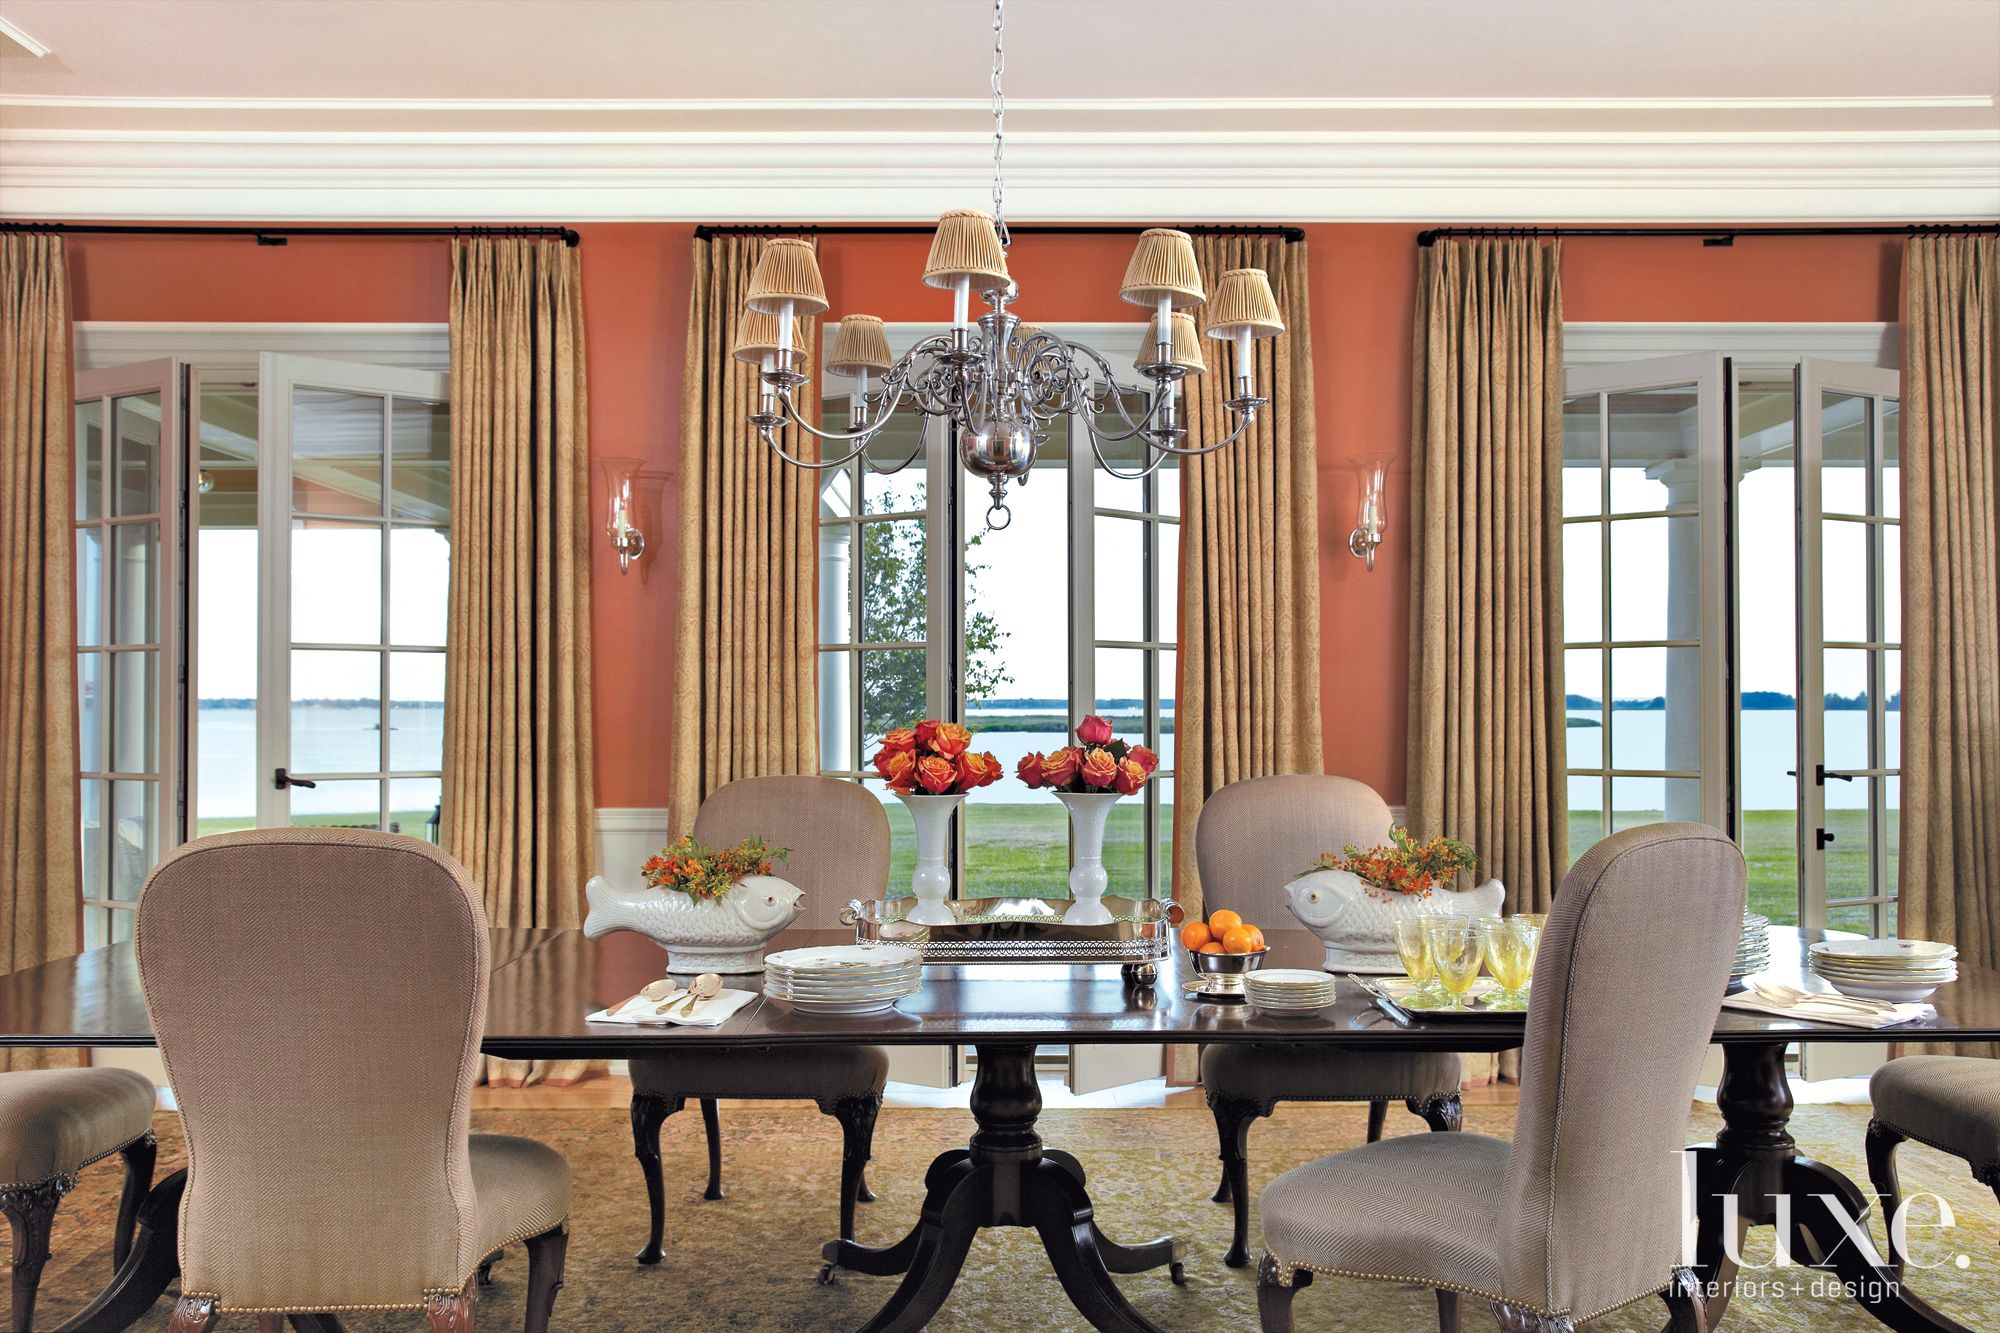 This traditional dining room on a working horse farm overlooks Chesapeake Bay. An oversized Oushak rug reinforces the detail of the golden cream window treatments and chandelier lampshades.